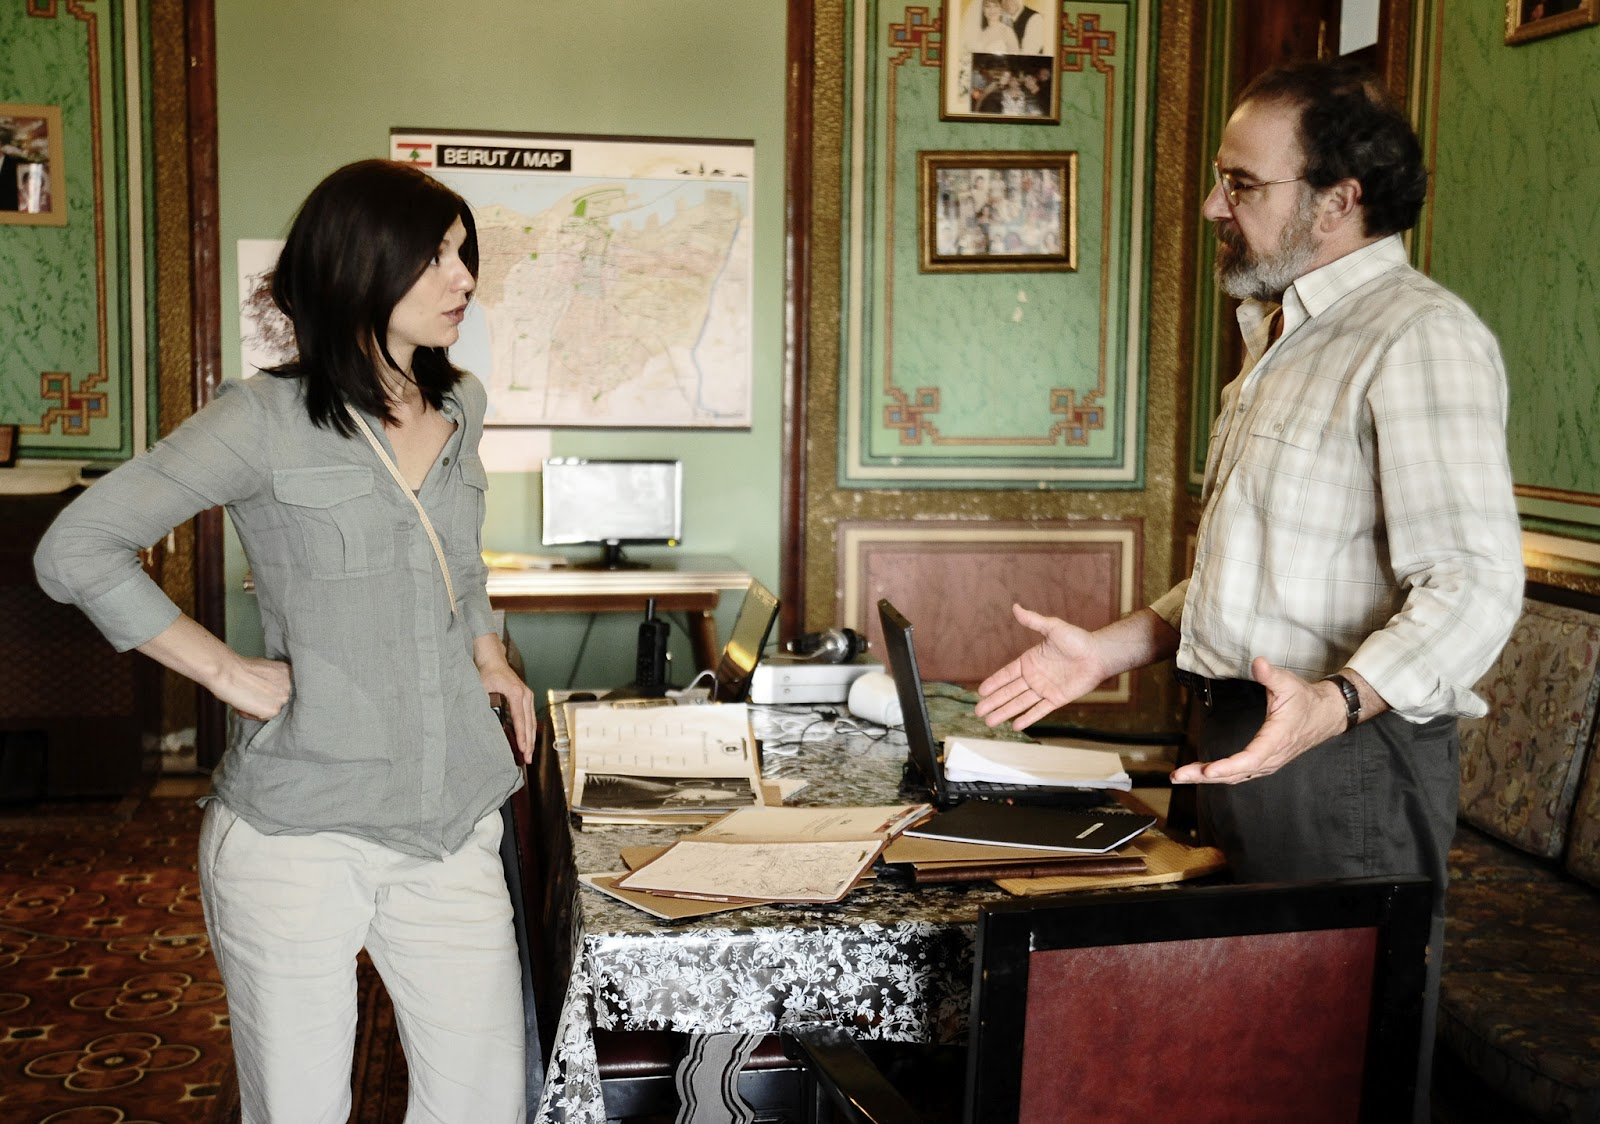 http://3.bp.blogspot.com/-YFCHePKa5VE/UESoav19iQI/AAAAAAAAaxU/8SRyH06NZ_E/s1600/Claire-Danes-and-Mandy-Patinkin-in-HOMELAND-Episode-2_02-3.jpg